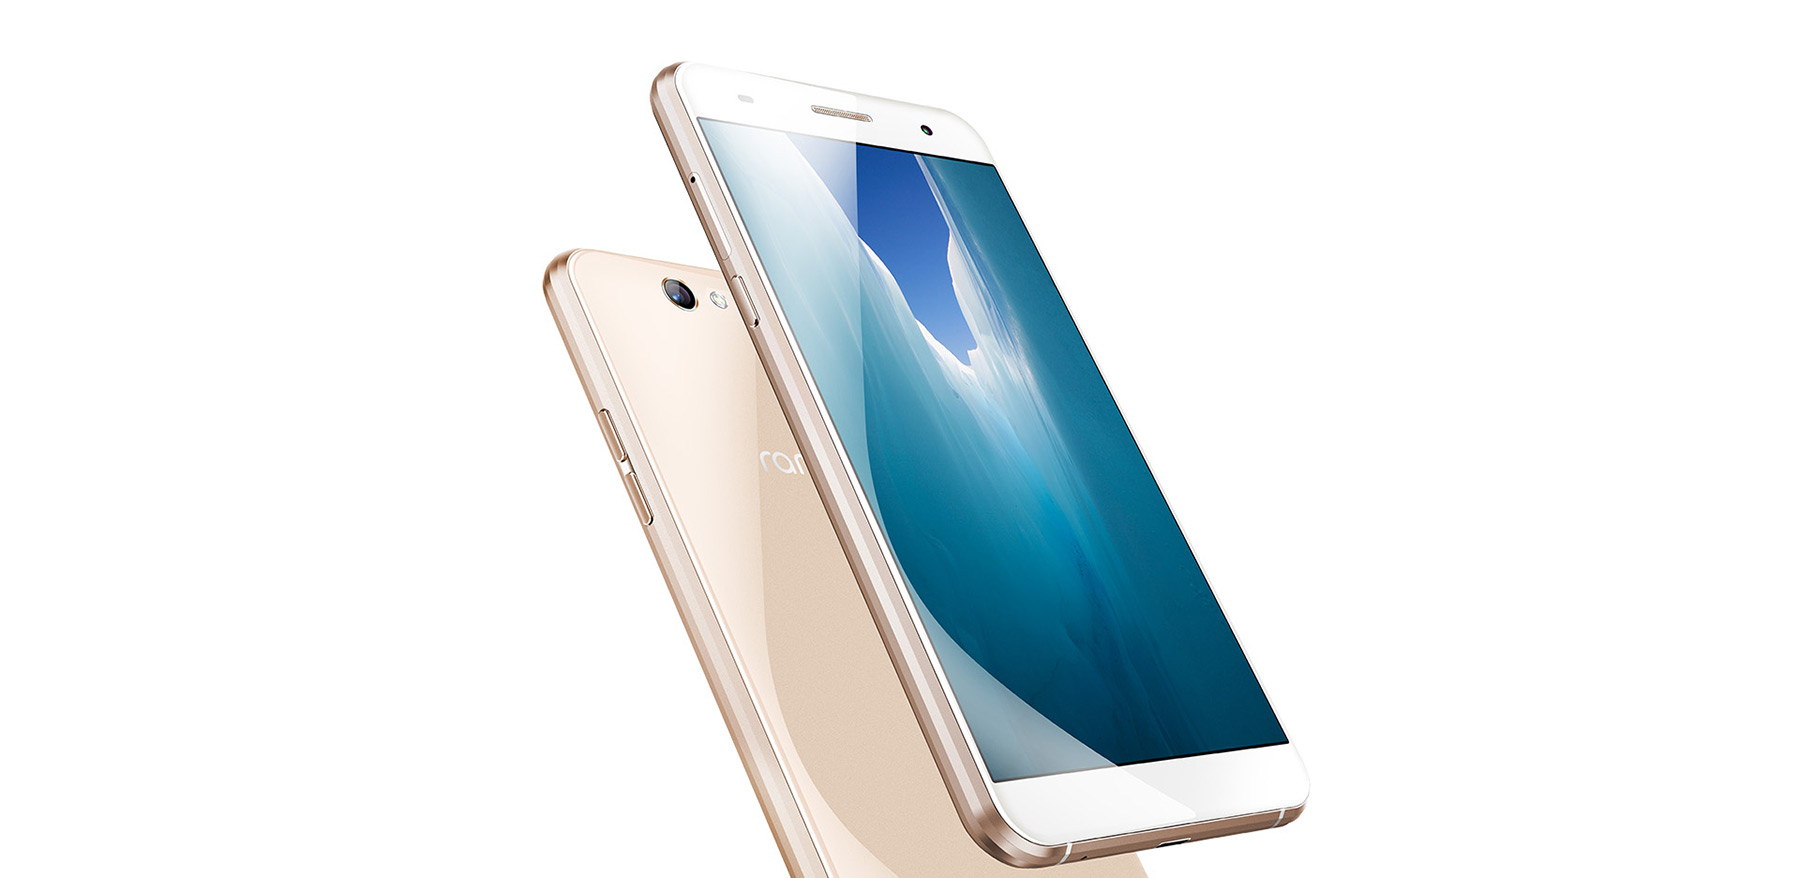 Ramos MOS 1 Android 5.0 5.5 inch 4G Phablet MSM8939 Octa Core 1.5GHz 2GB RAM 32GB ROM 13.0MP Rear Camera Bluetooth 4.0